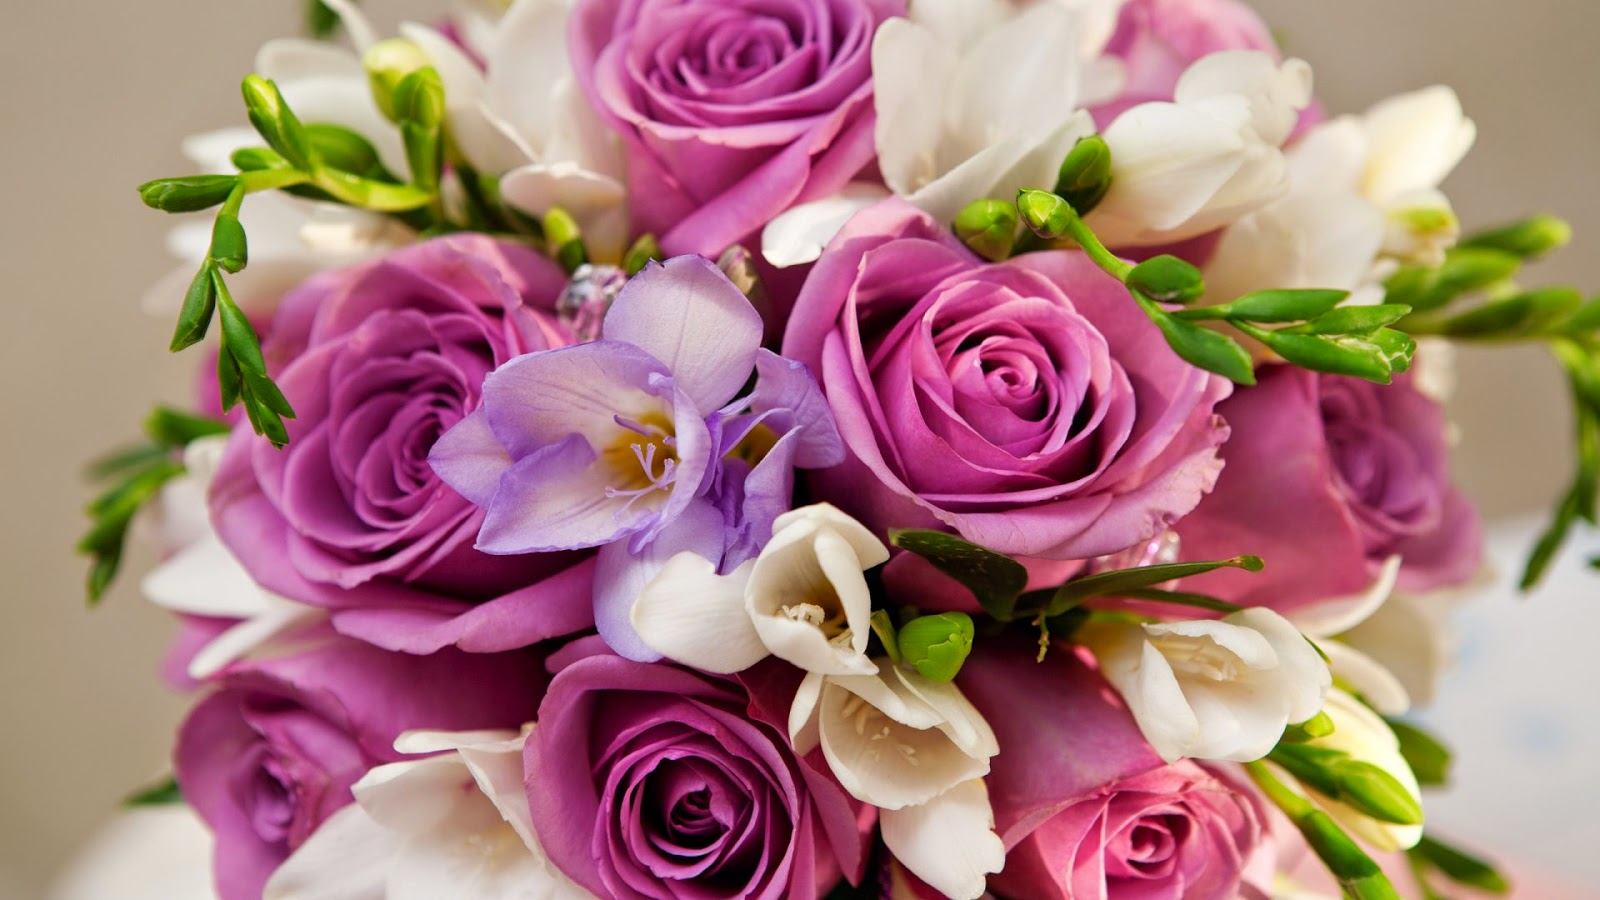 Most Beautiful Flowers in the World - Flower With Styles |Most Magnificent Flowers